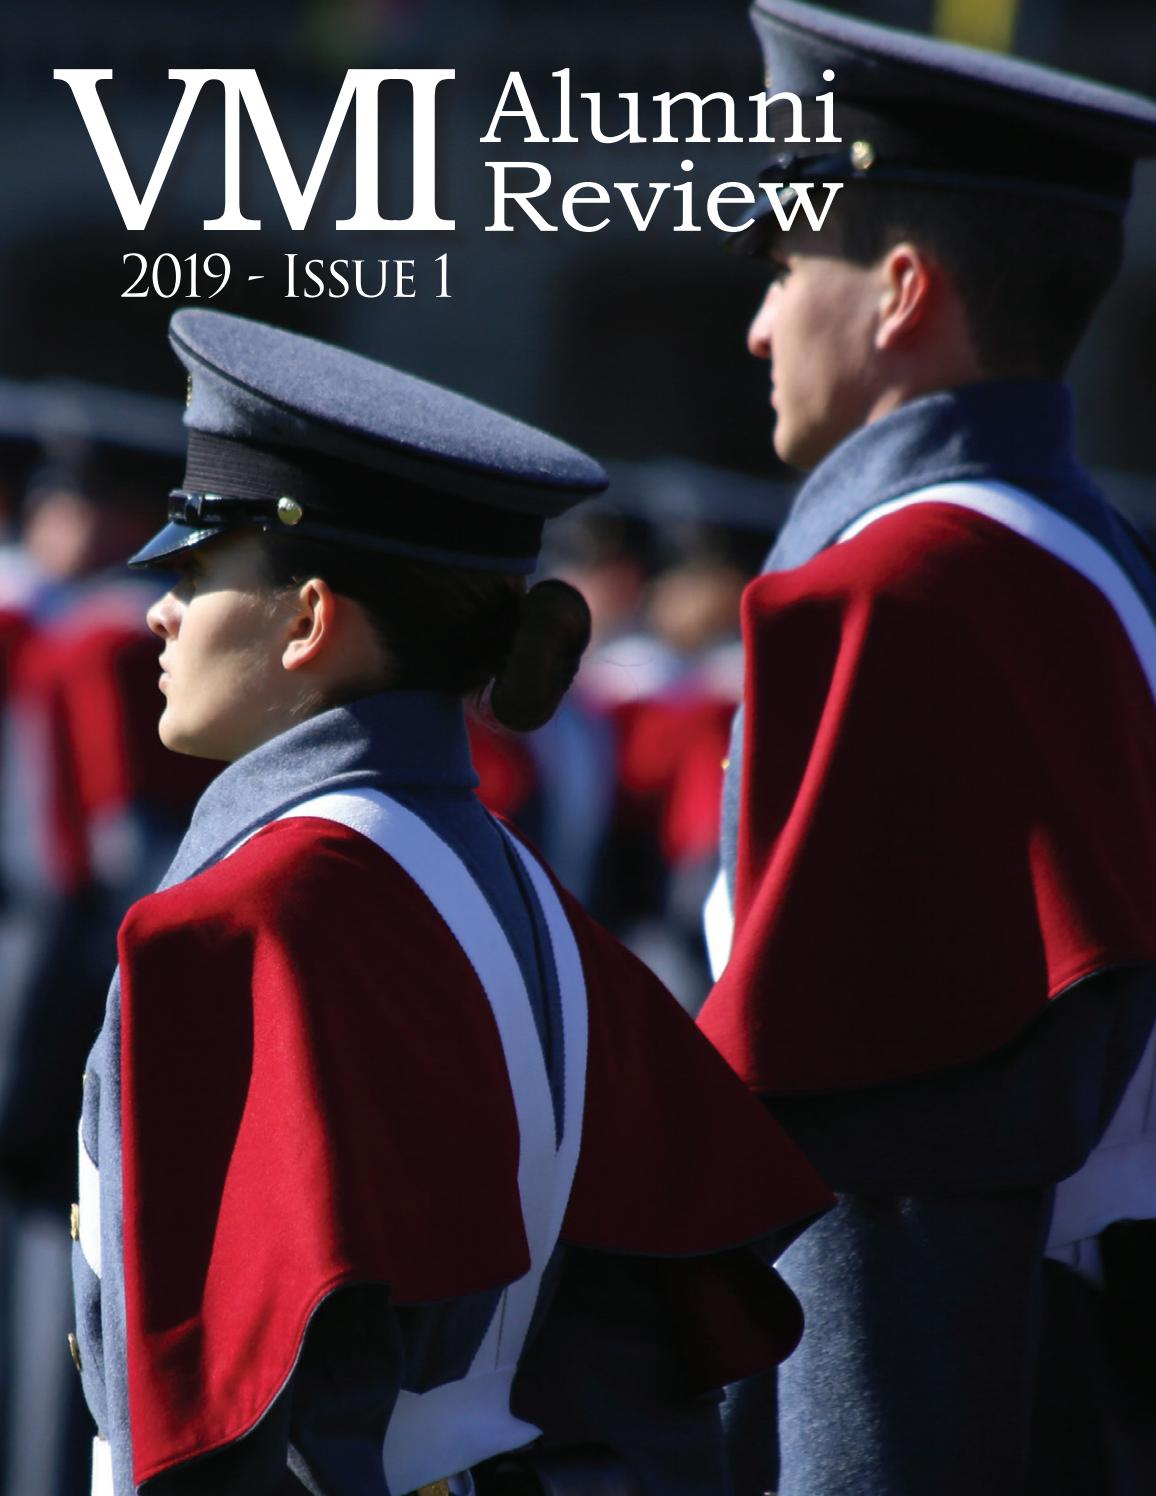 ccd7286e57 2019-Issue 1 Alumni Review by VMI Alumni Agencies - issuu